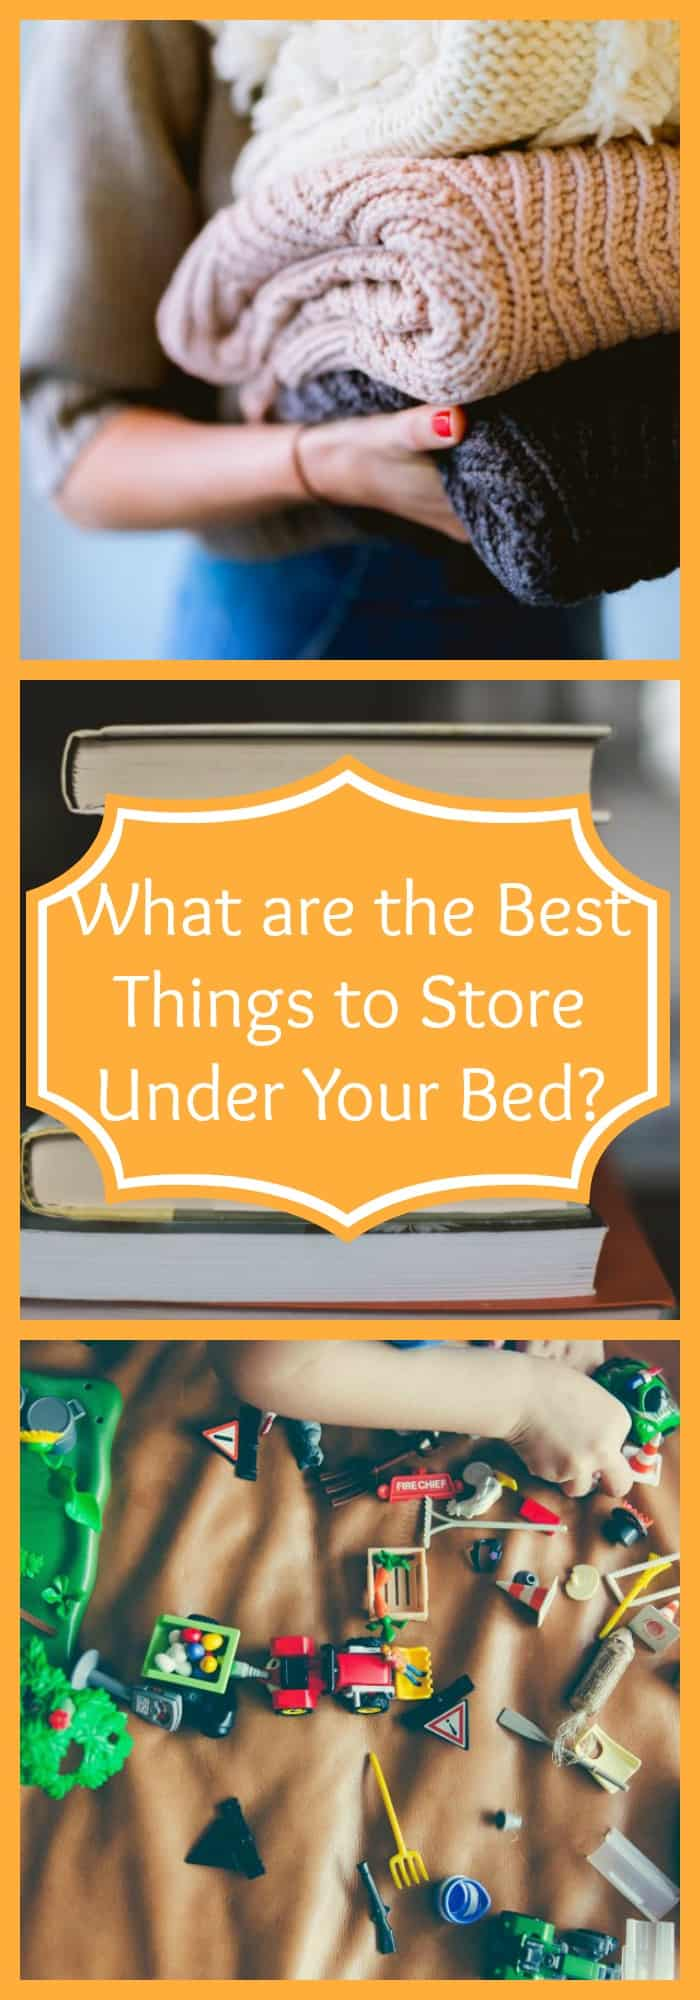 What are the Best Things to Store Under Your Bed?